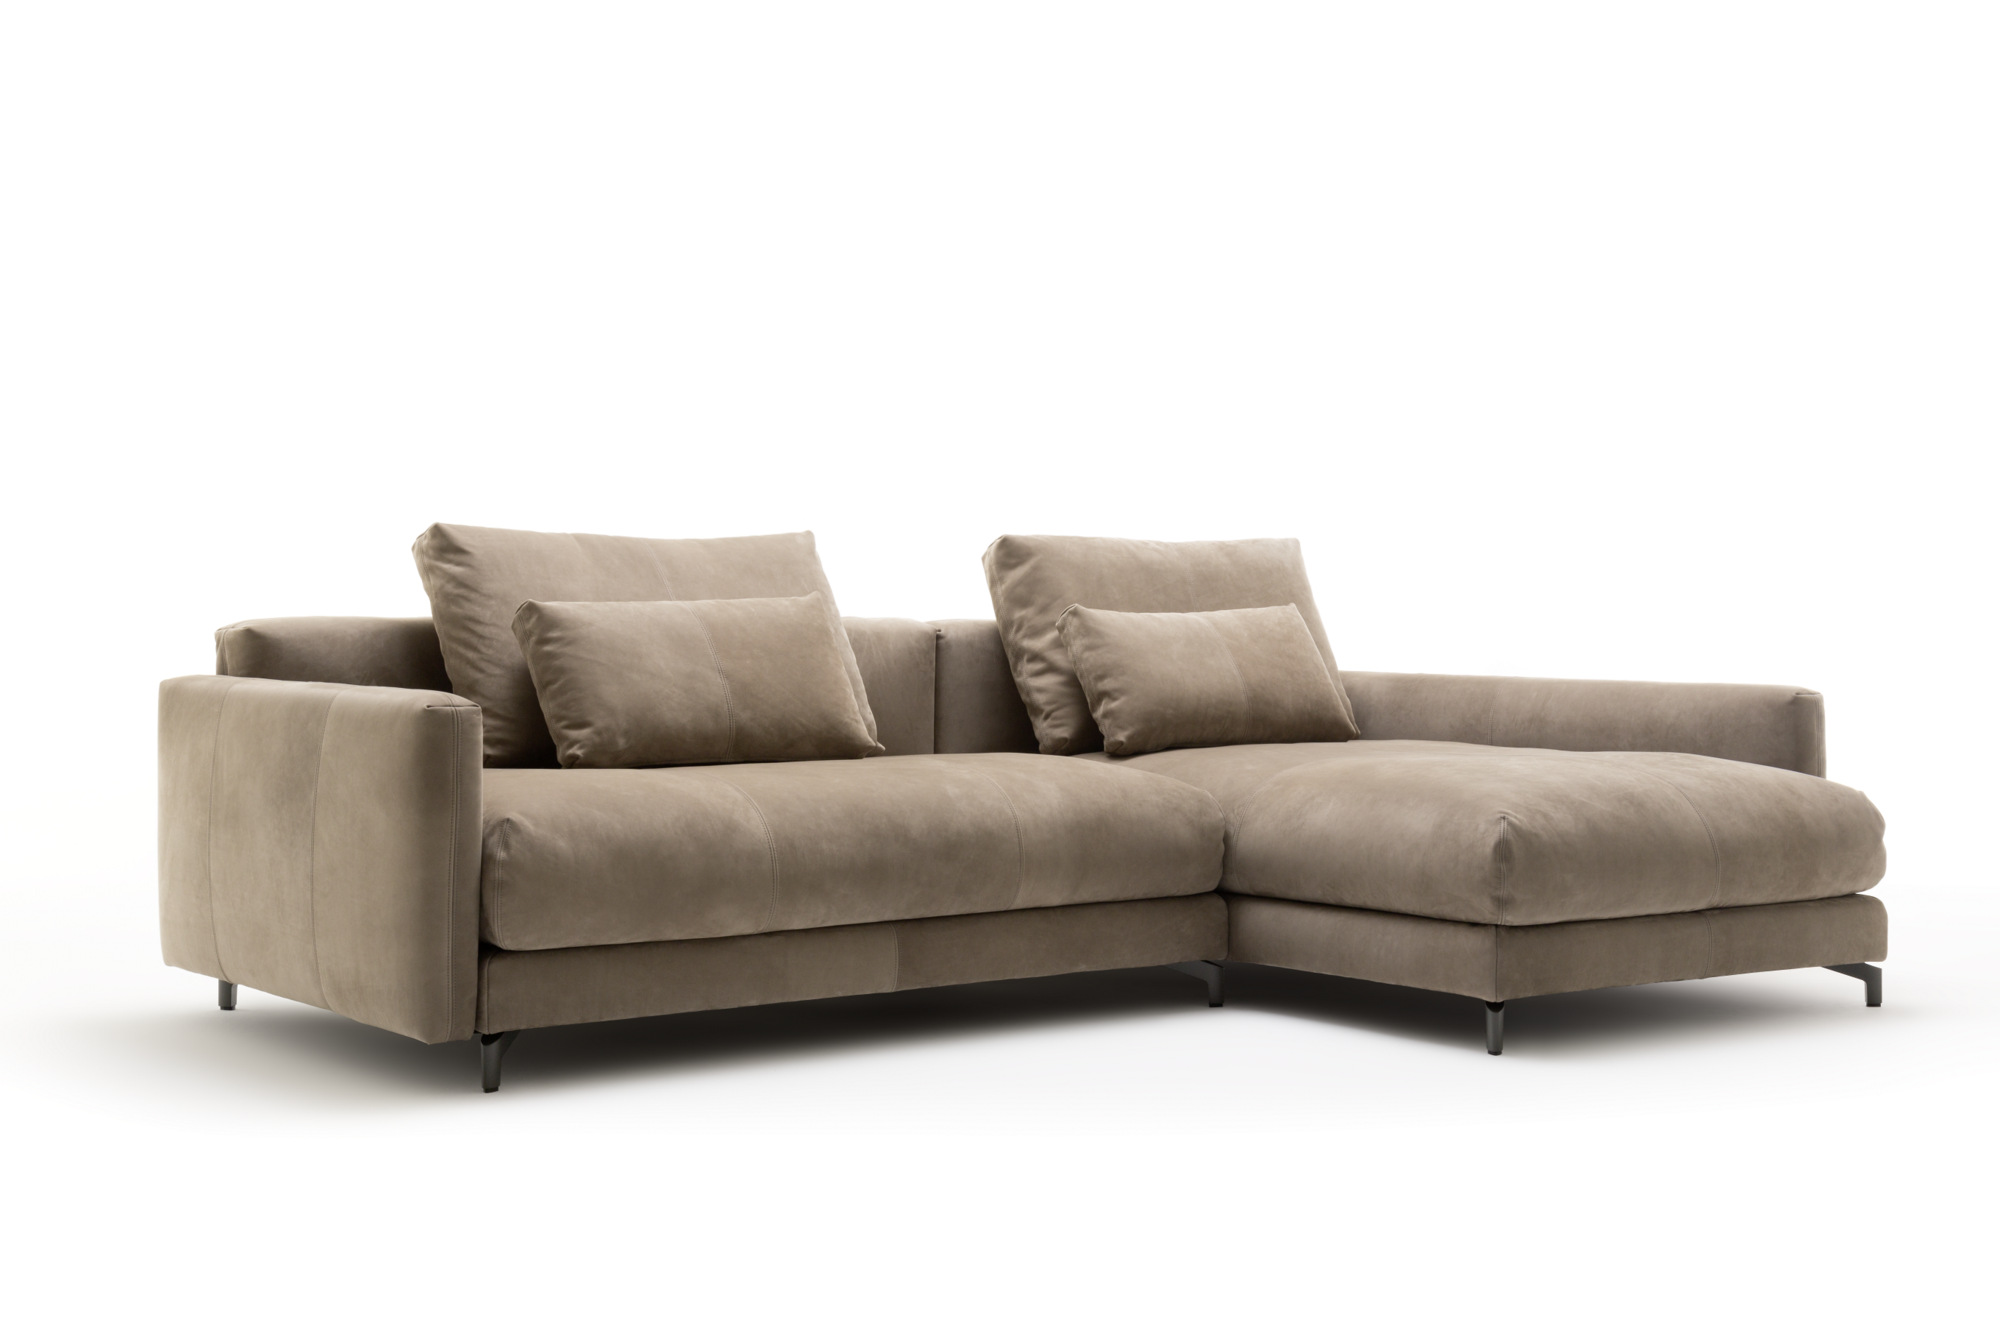 Sectional leather sofa with chaise longue nuvola sofa - Cubre sofas chaise longue ...